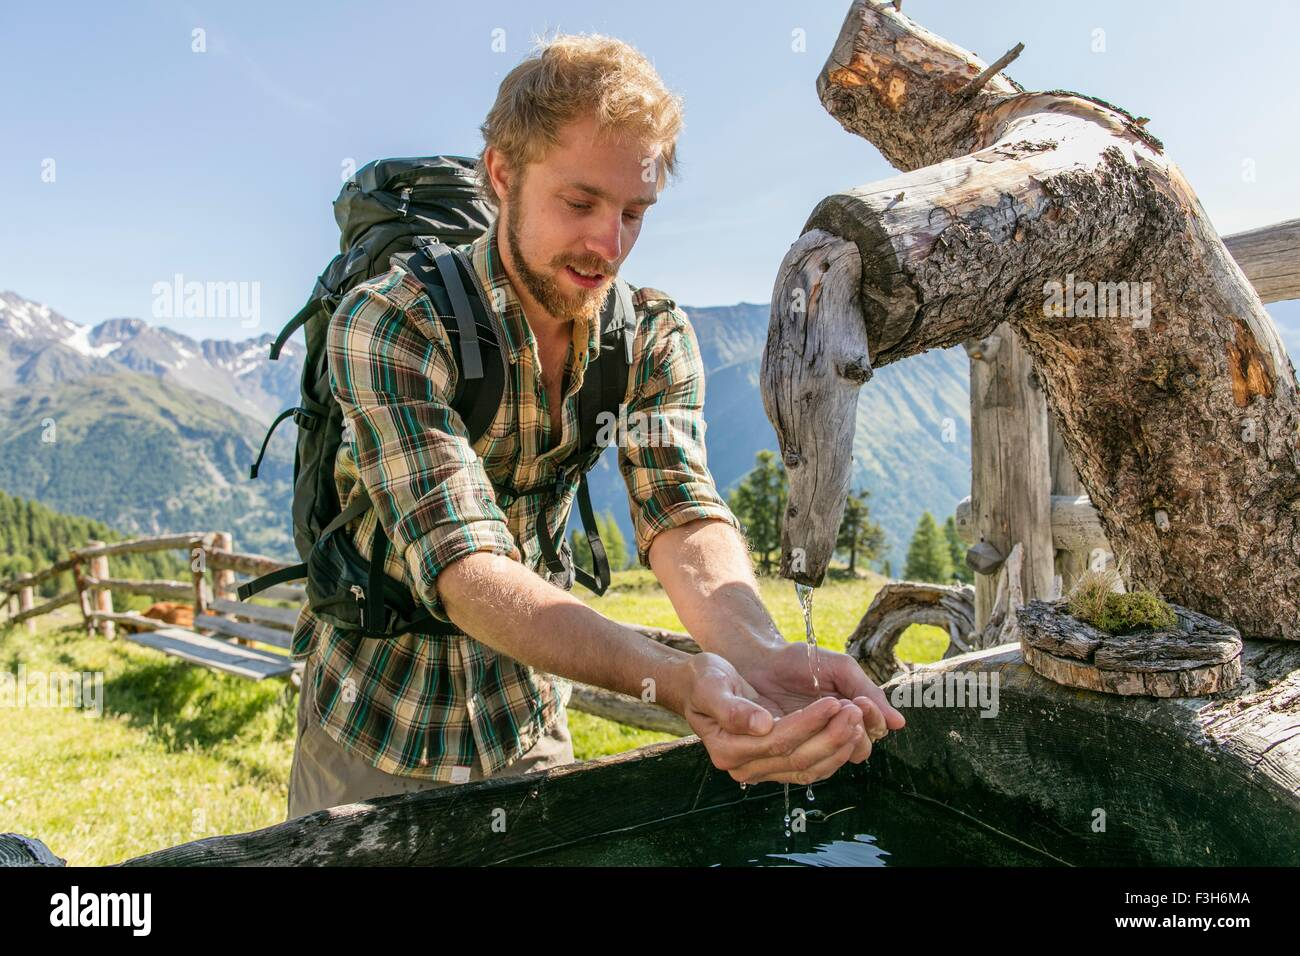 Young male hiker drinking water from rustic trough, Karthaus, Val Senales, South Tyrol, Italy - Stock Image